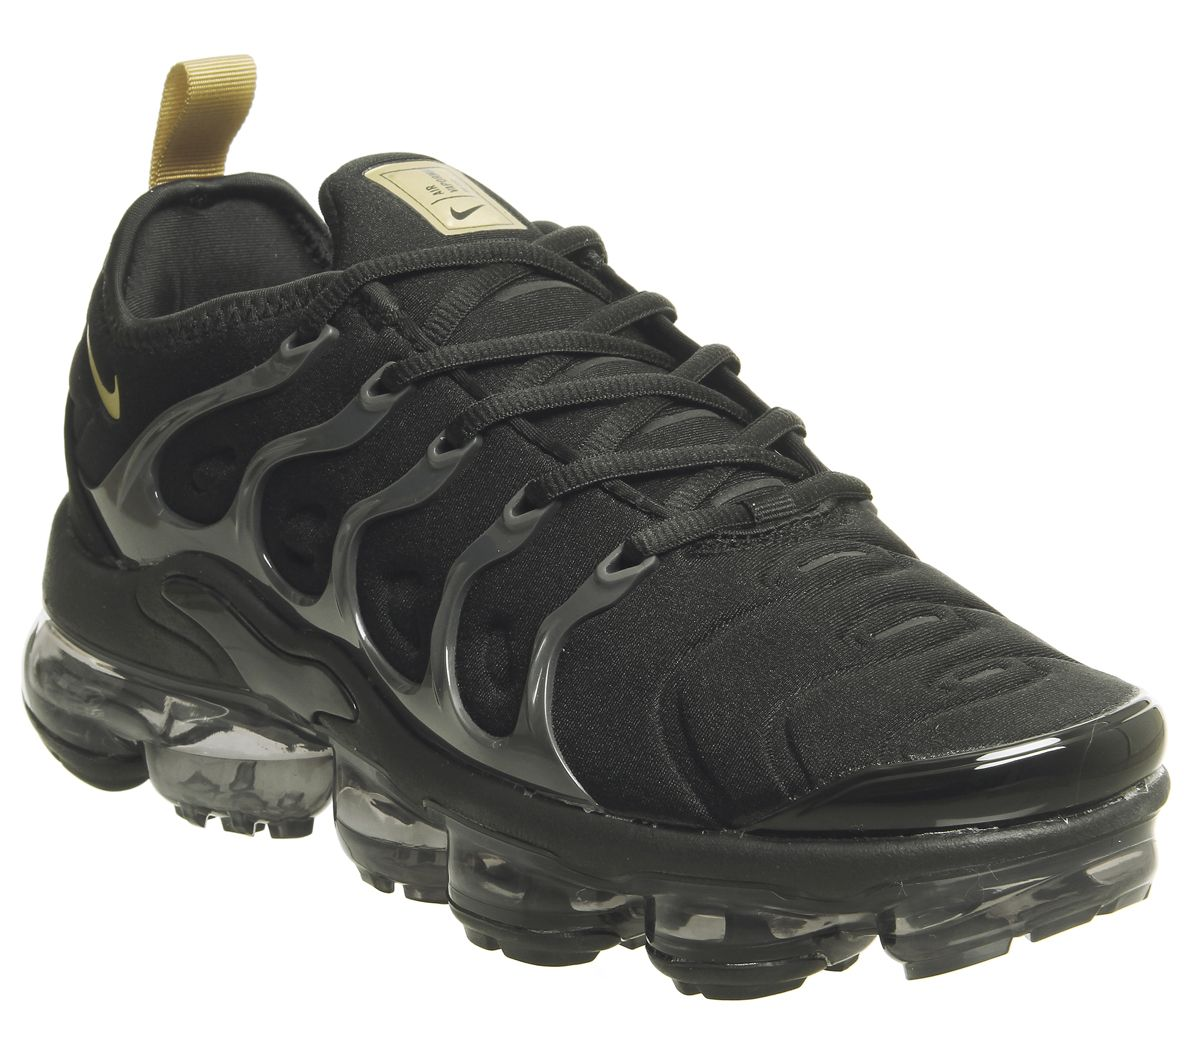 ea4537d1d6 Nike Vapormax Air Vapormax Plus Trainers Black Metallic Gold - His ...